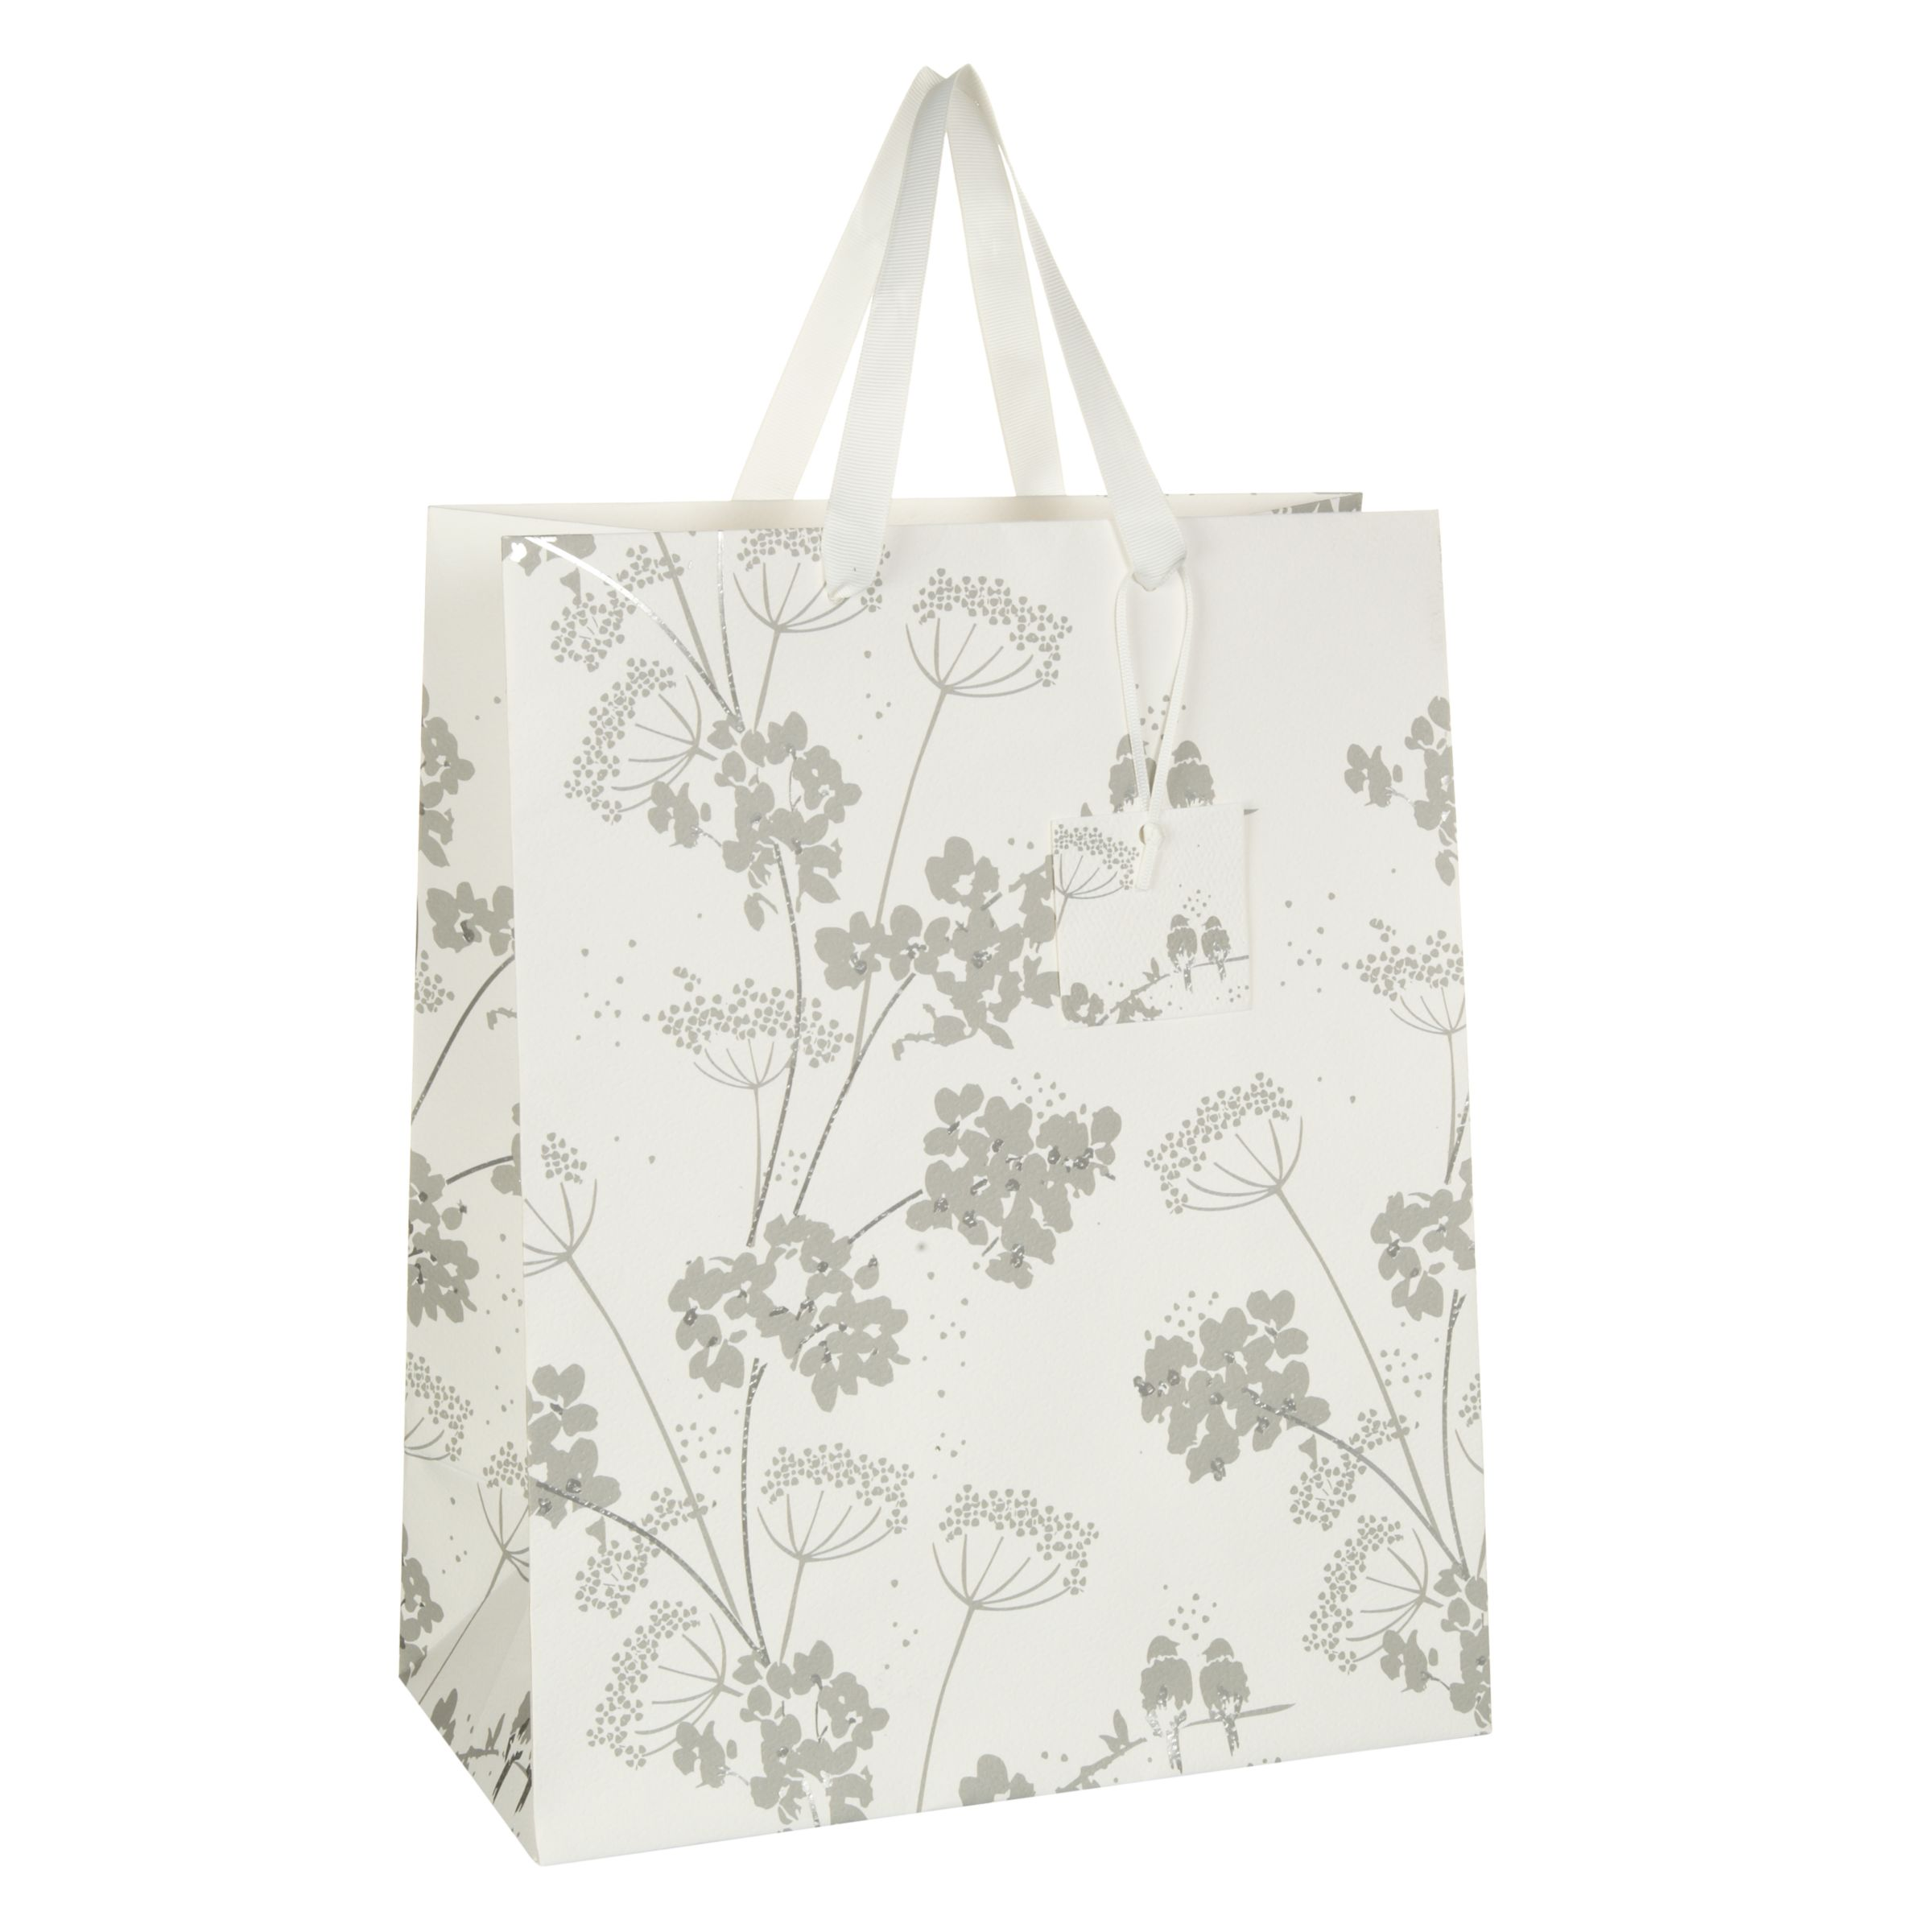 John Lewis Wedding Gift List Review : Buy John Lewis Silver Birds Gift Bag, Medium John Lewis